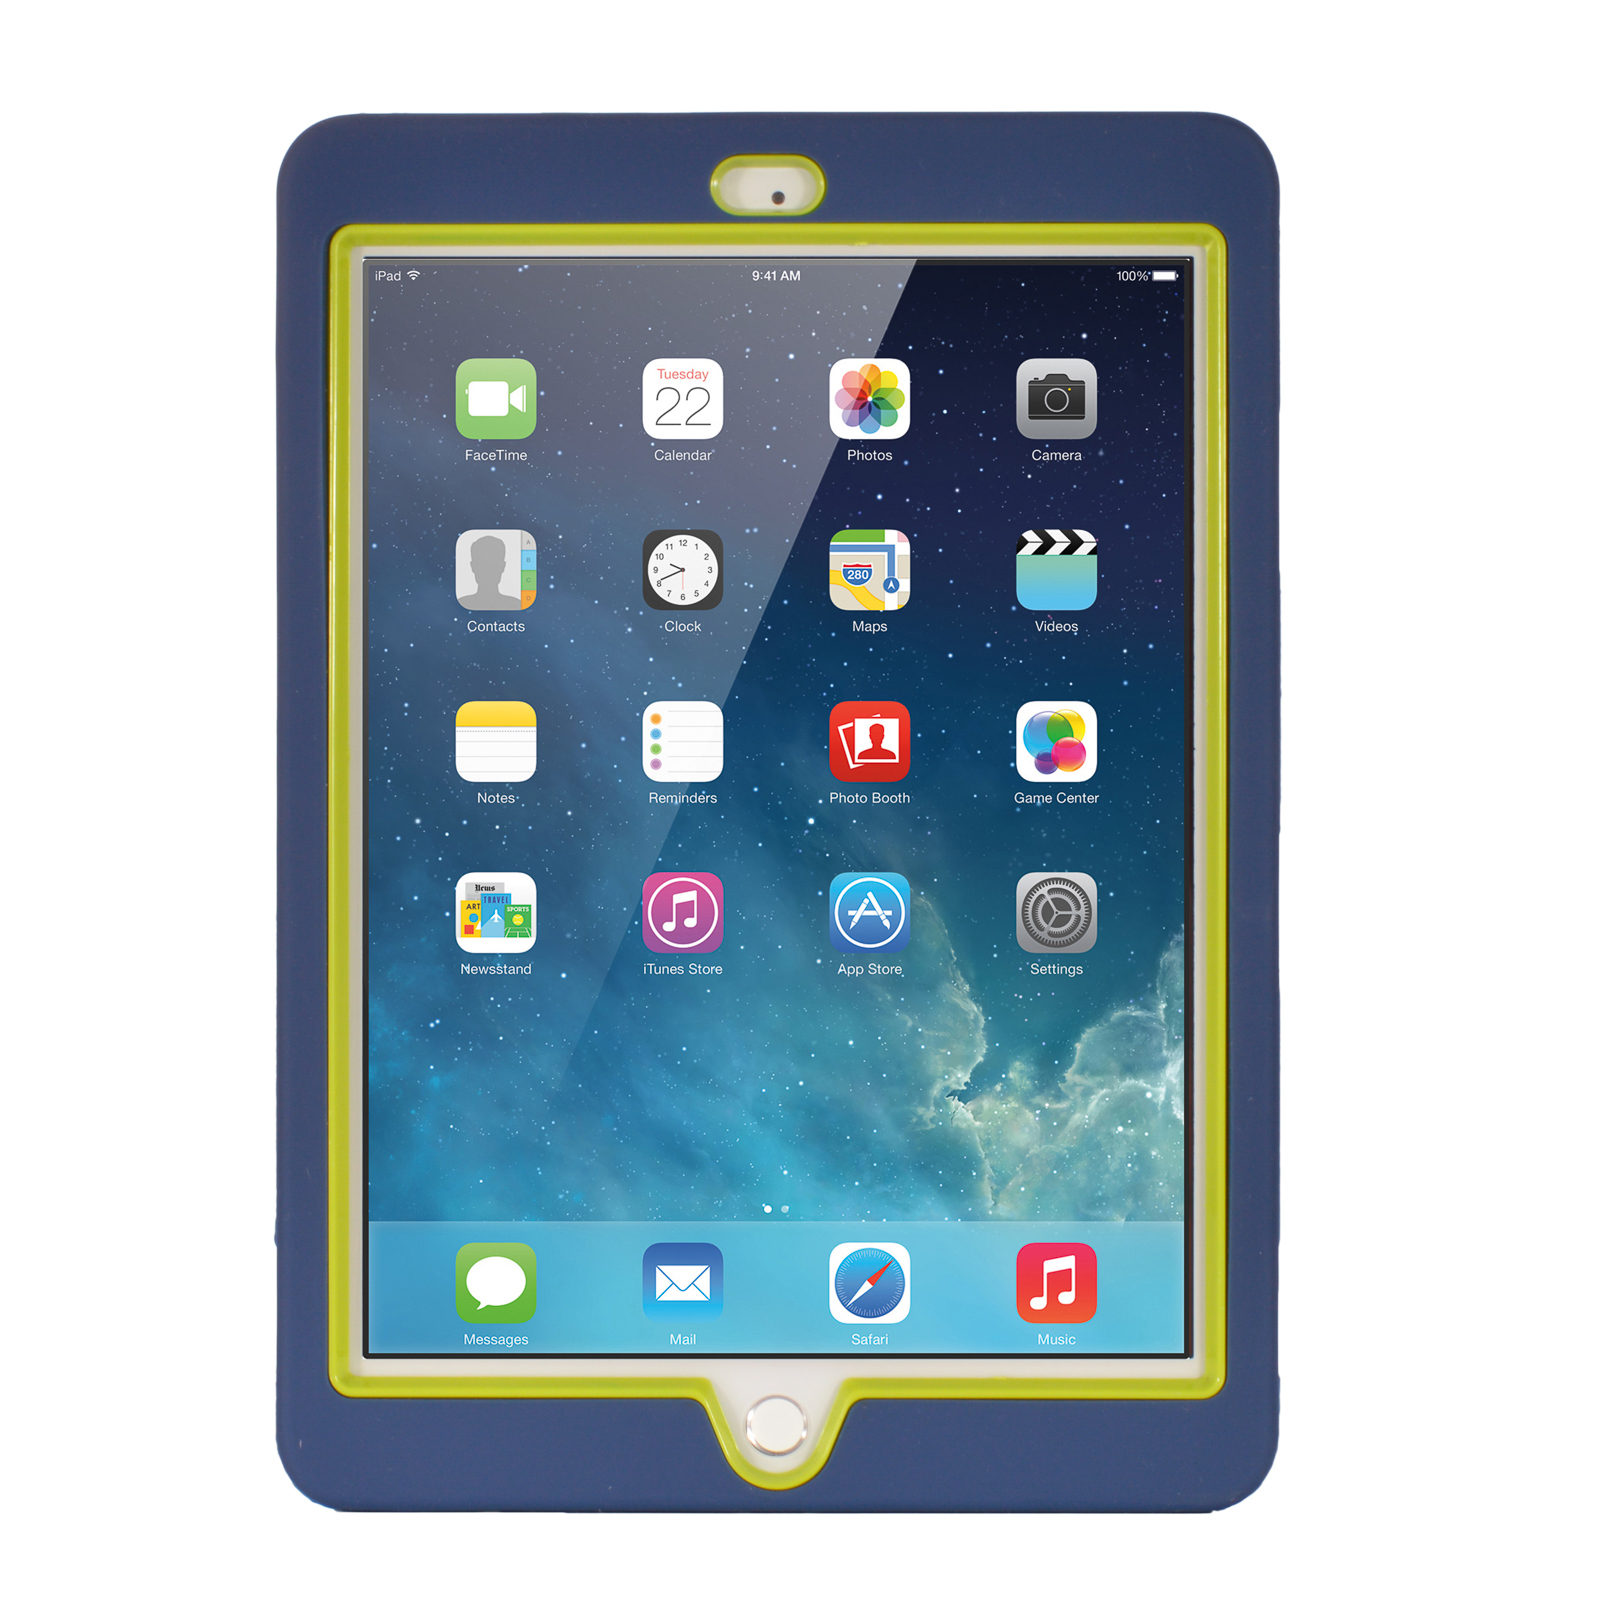 Bakeey Armor Full Body Shockproof Tablet Case For iPad Air 2/iPad Pro 9.7